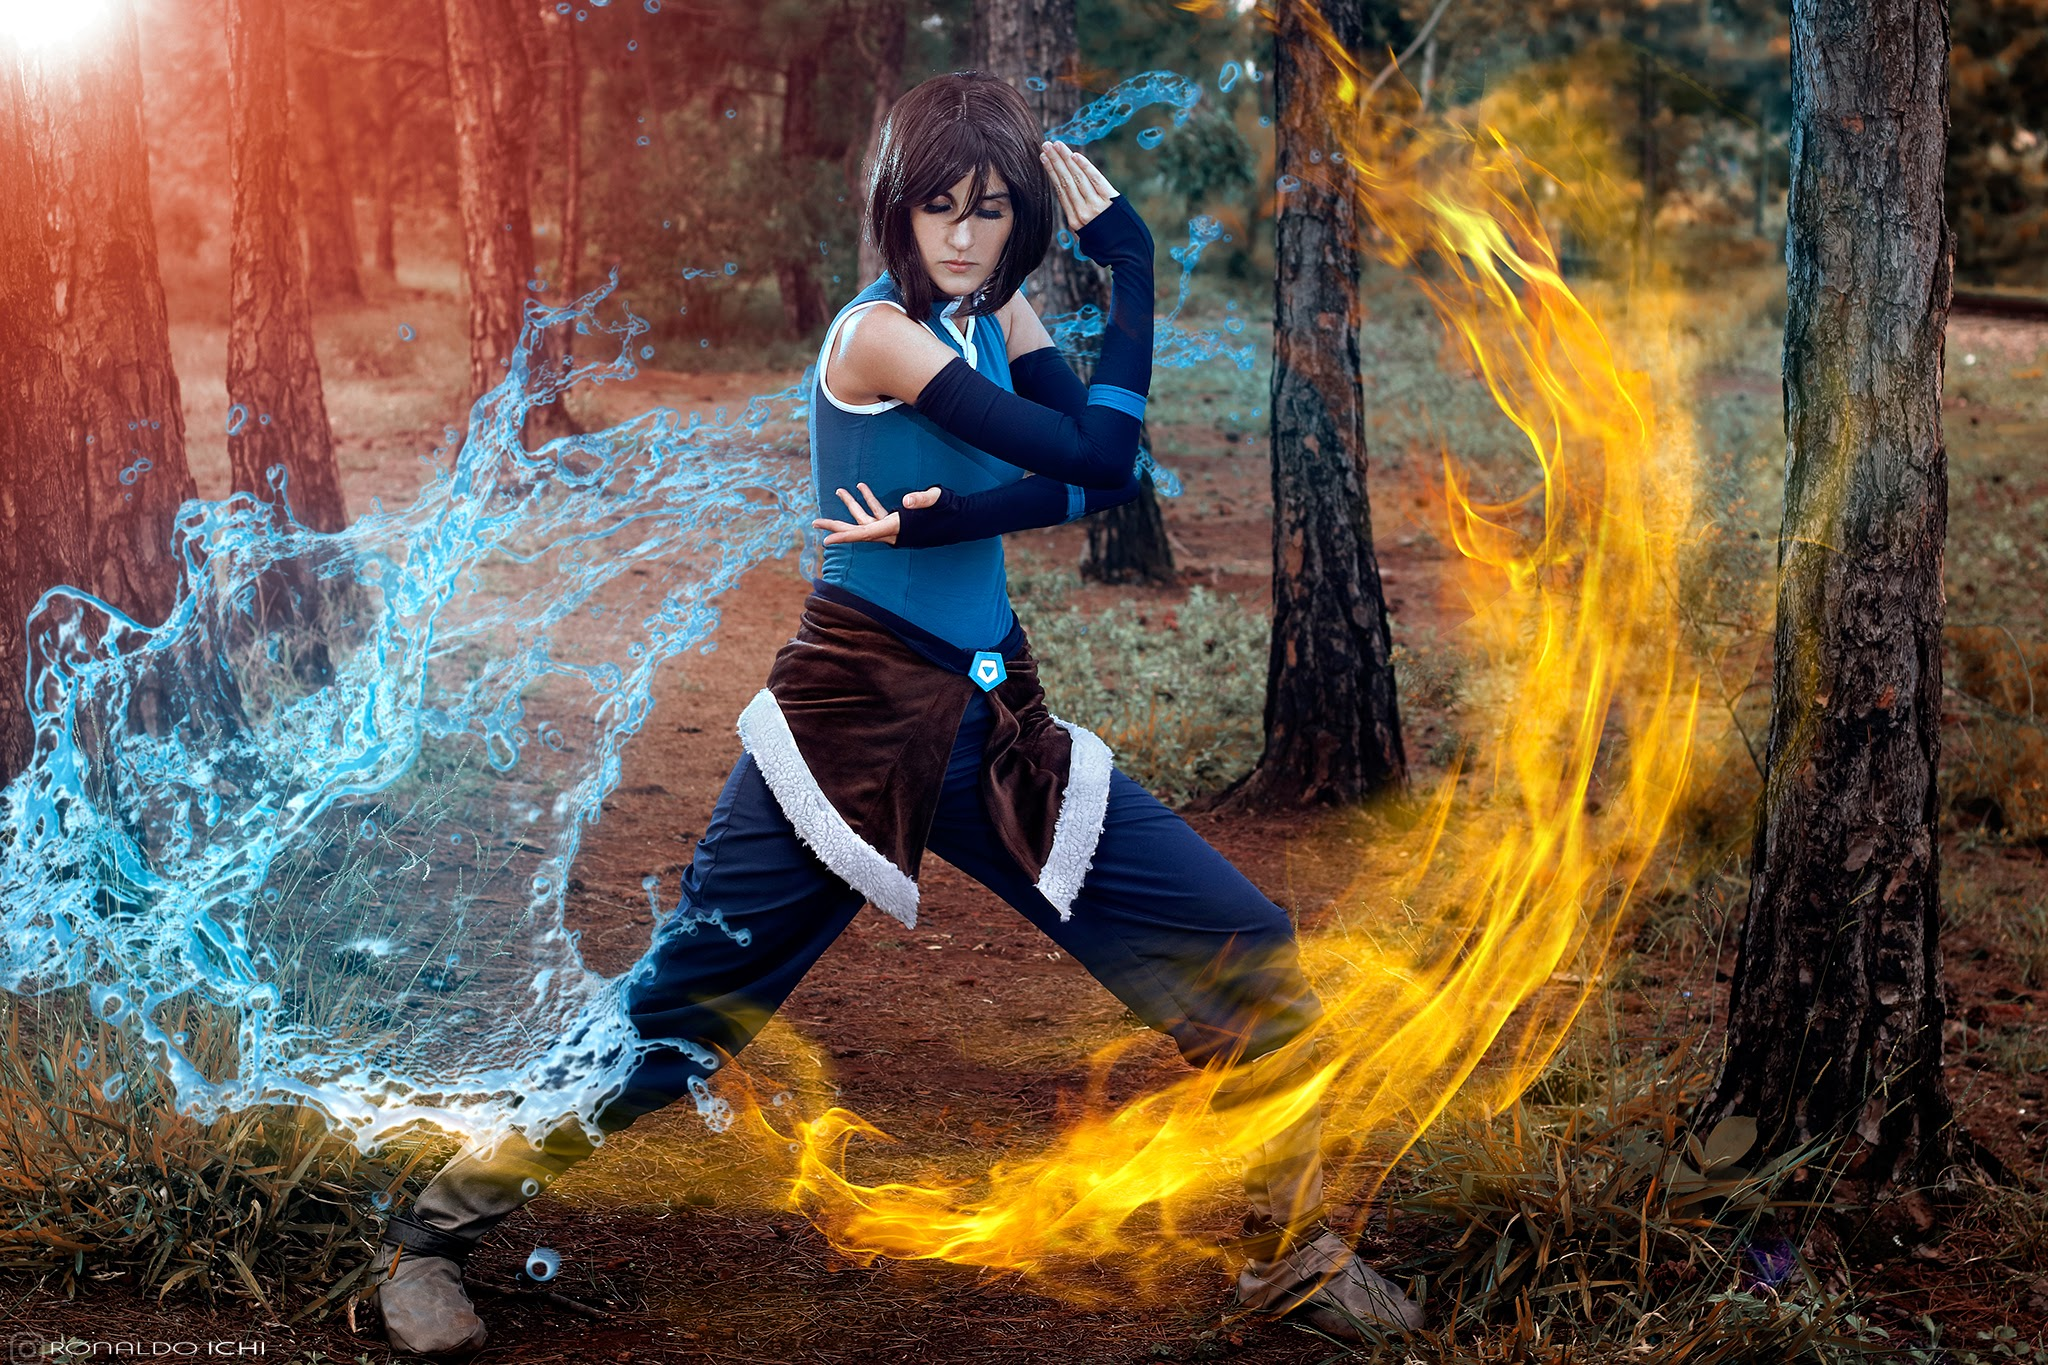 cosplay - Korra and Asami Sato from The Legend of Korra - cosplayers Rizzy and Rach - photography by Ronaldo Ichi